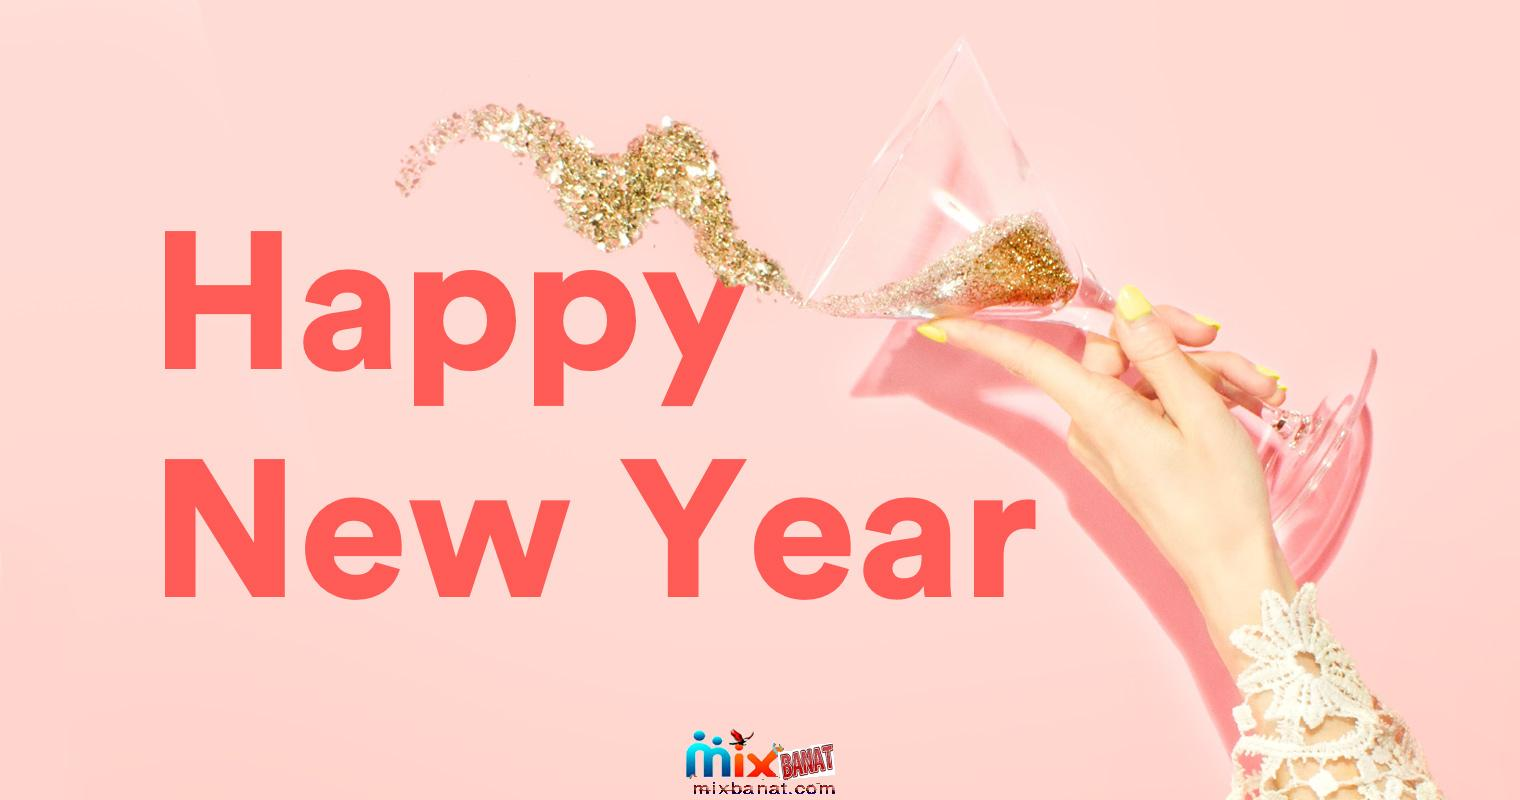 Happy New Year - New Year 2021 greeting card 2021 golden New Year